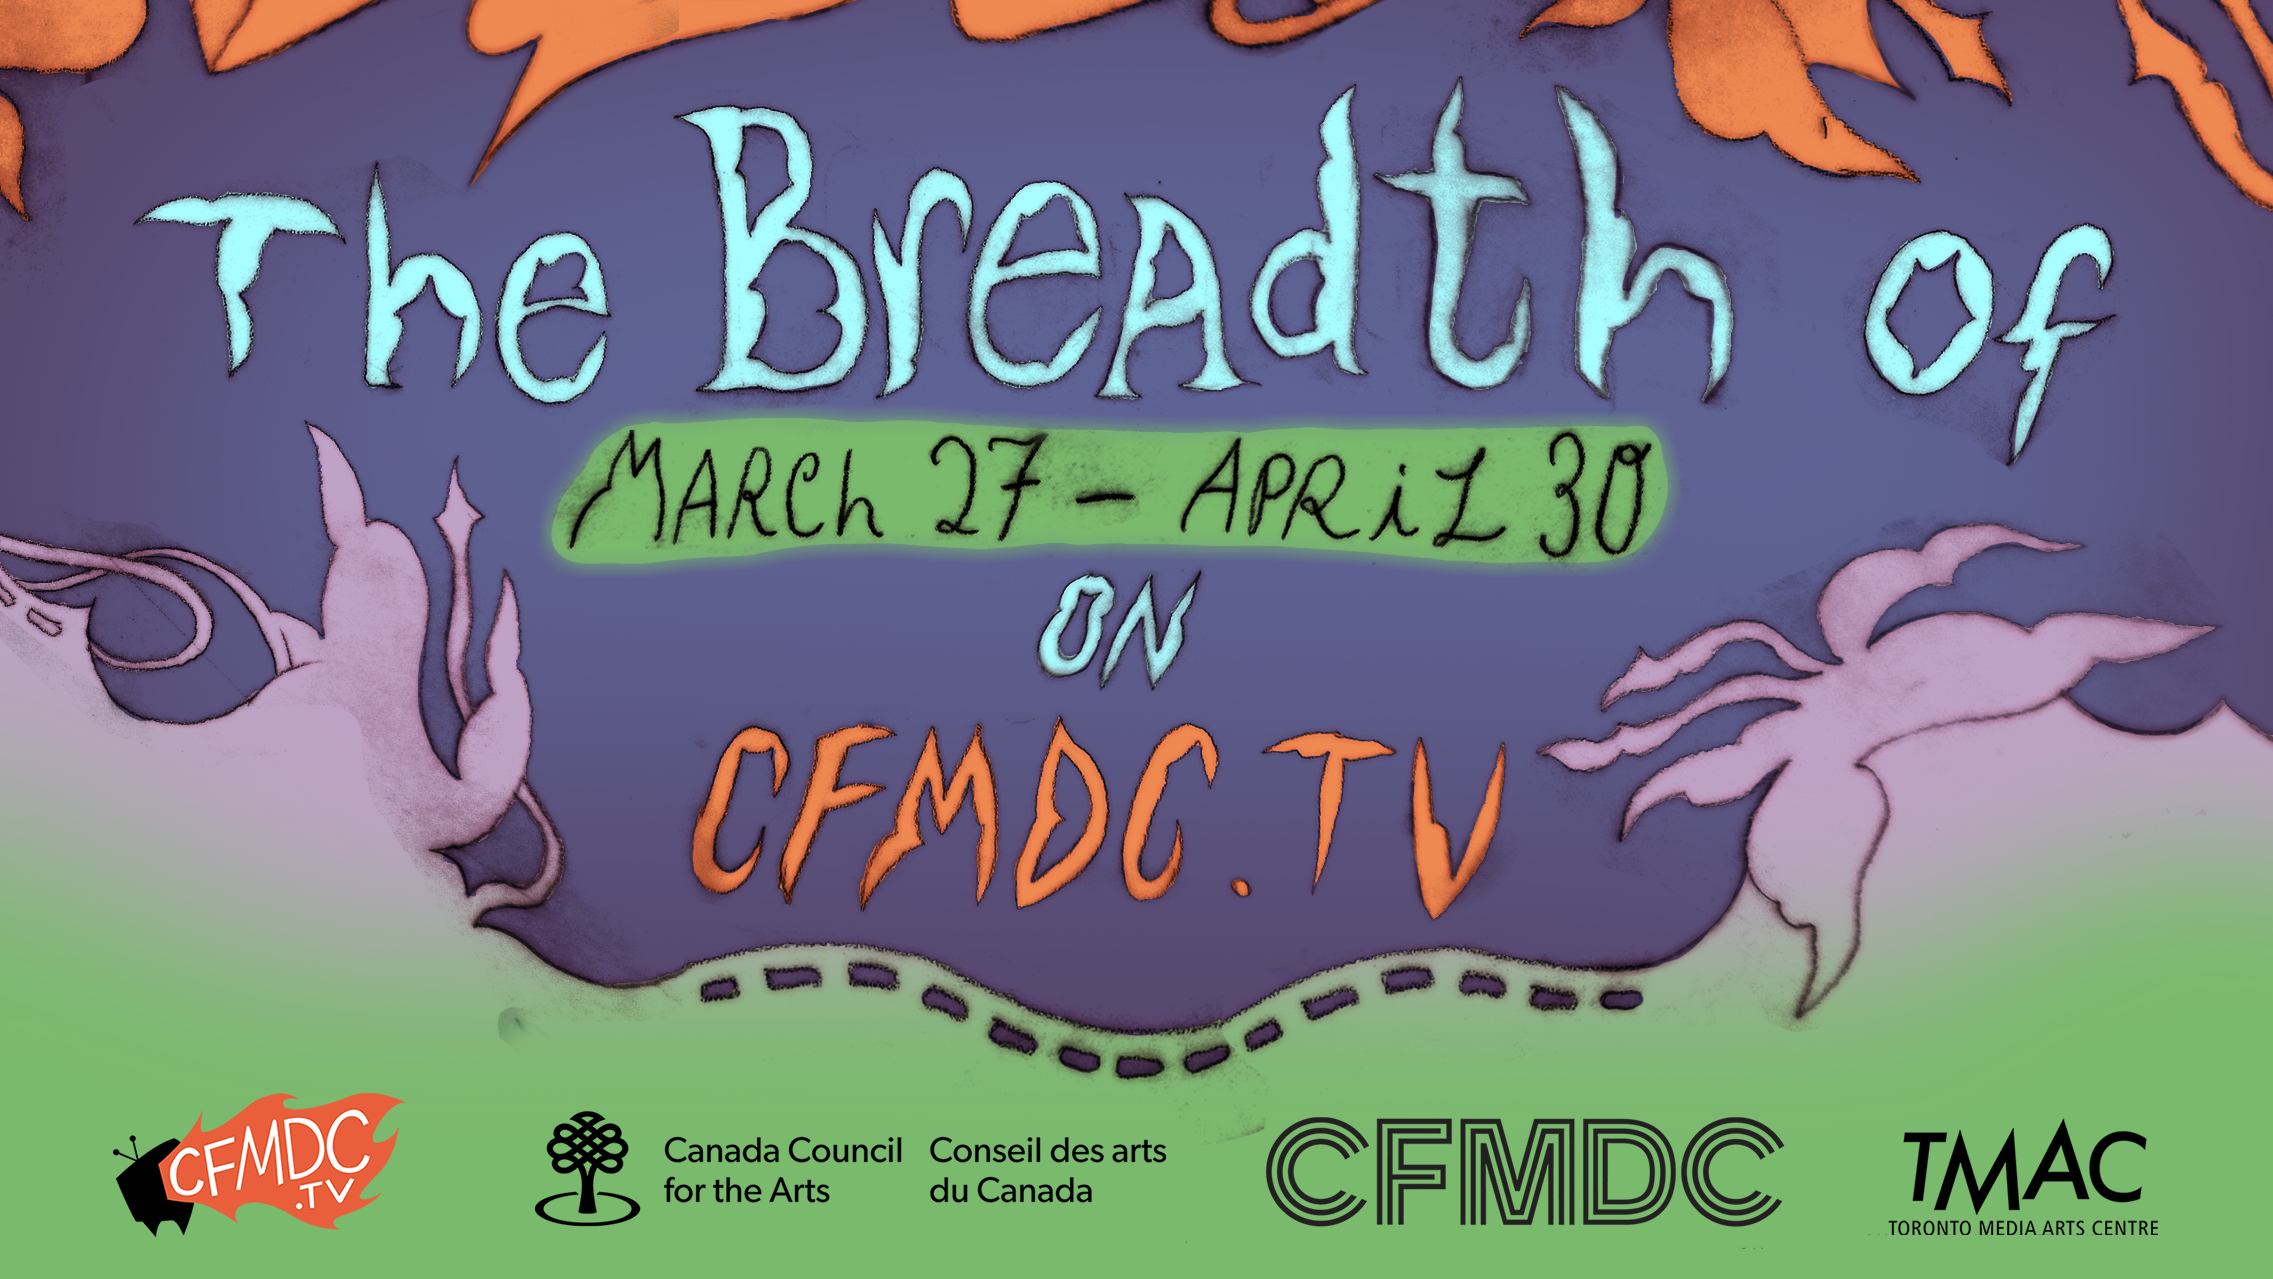 poster for the breadth of on CFMDC.tv